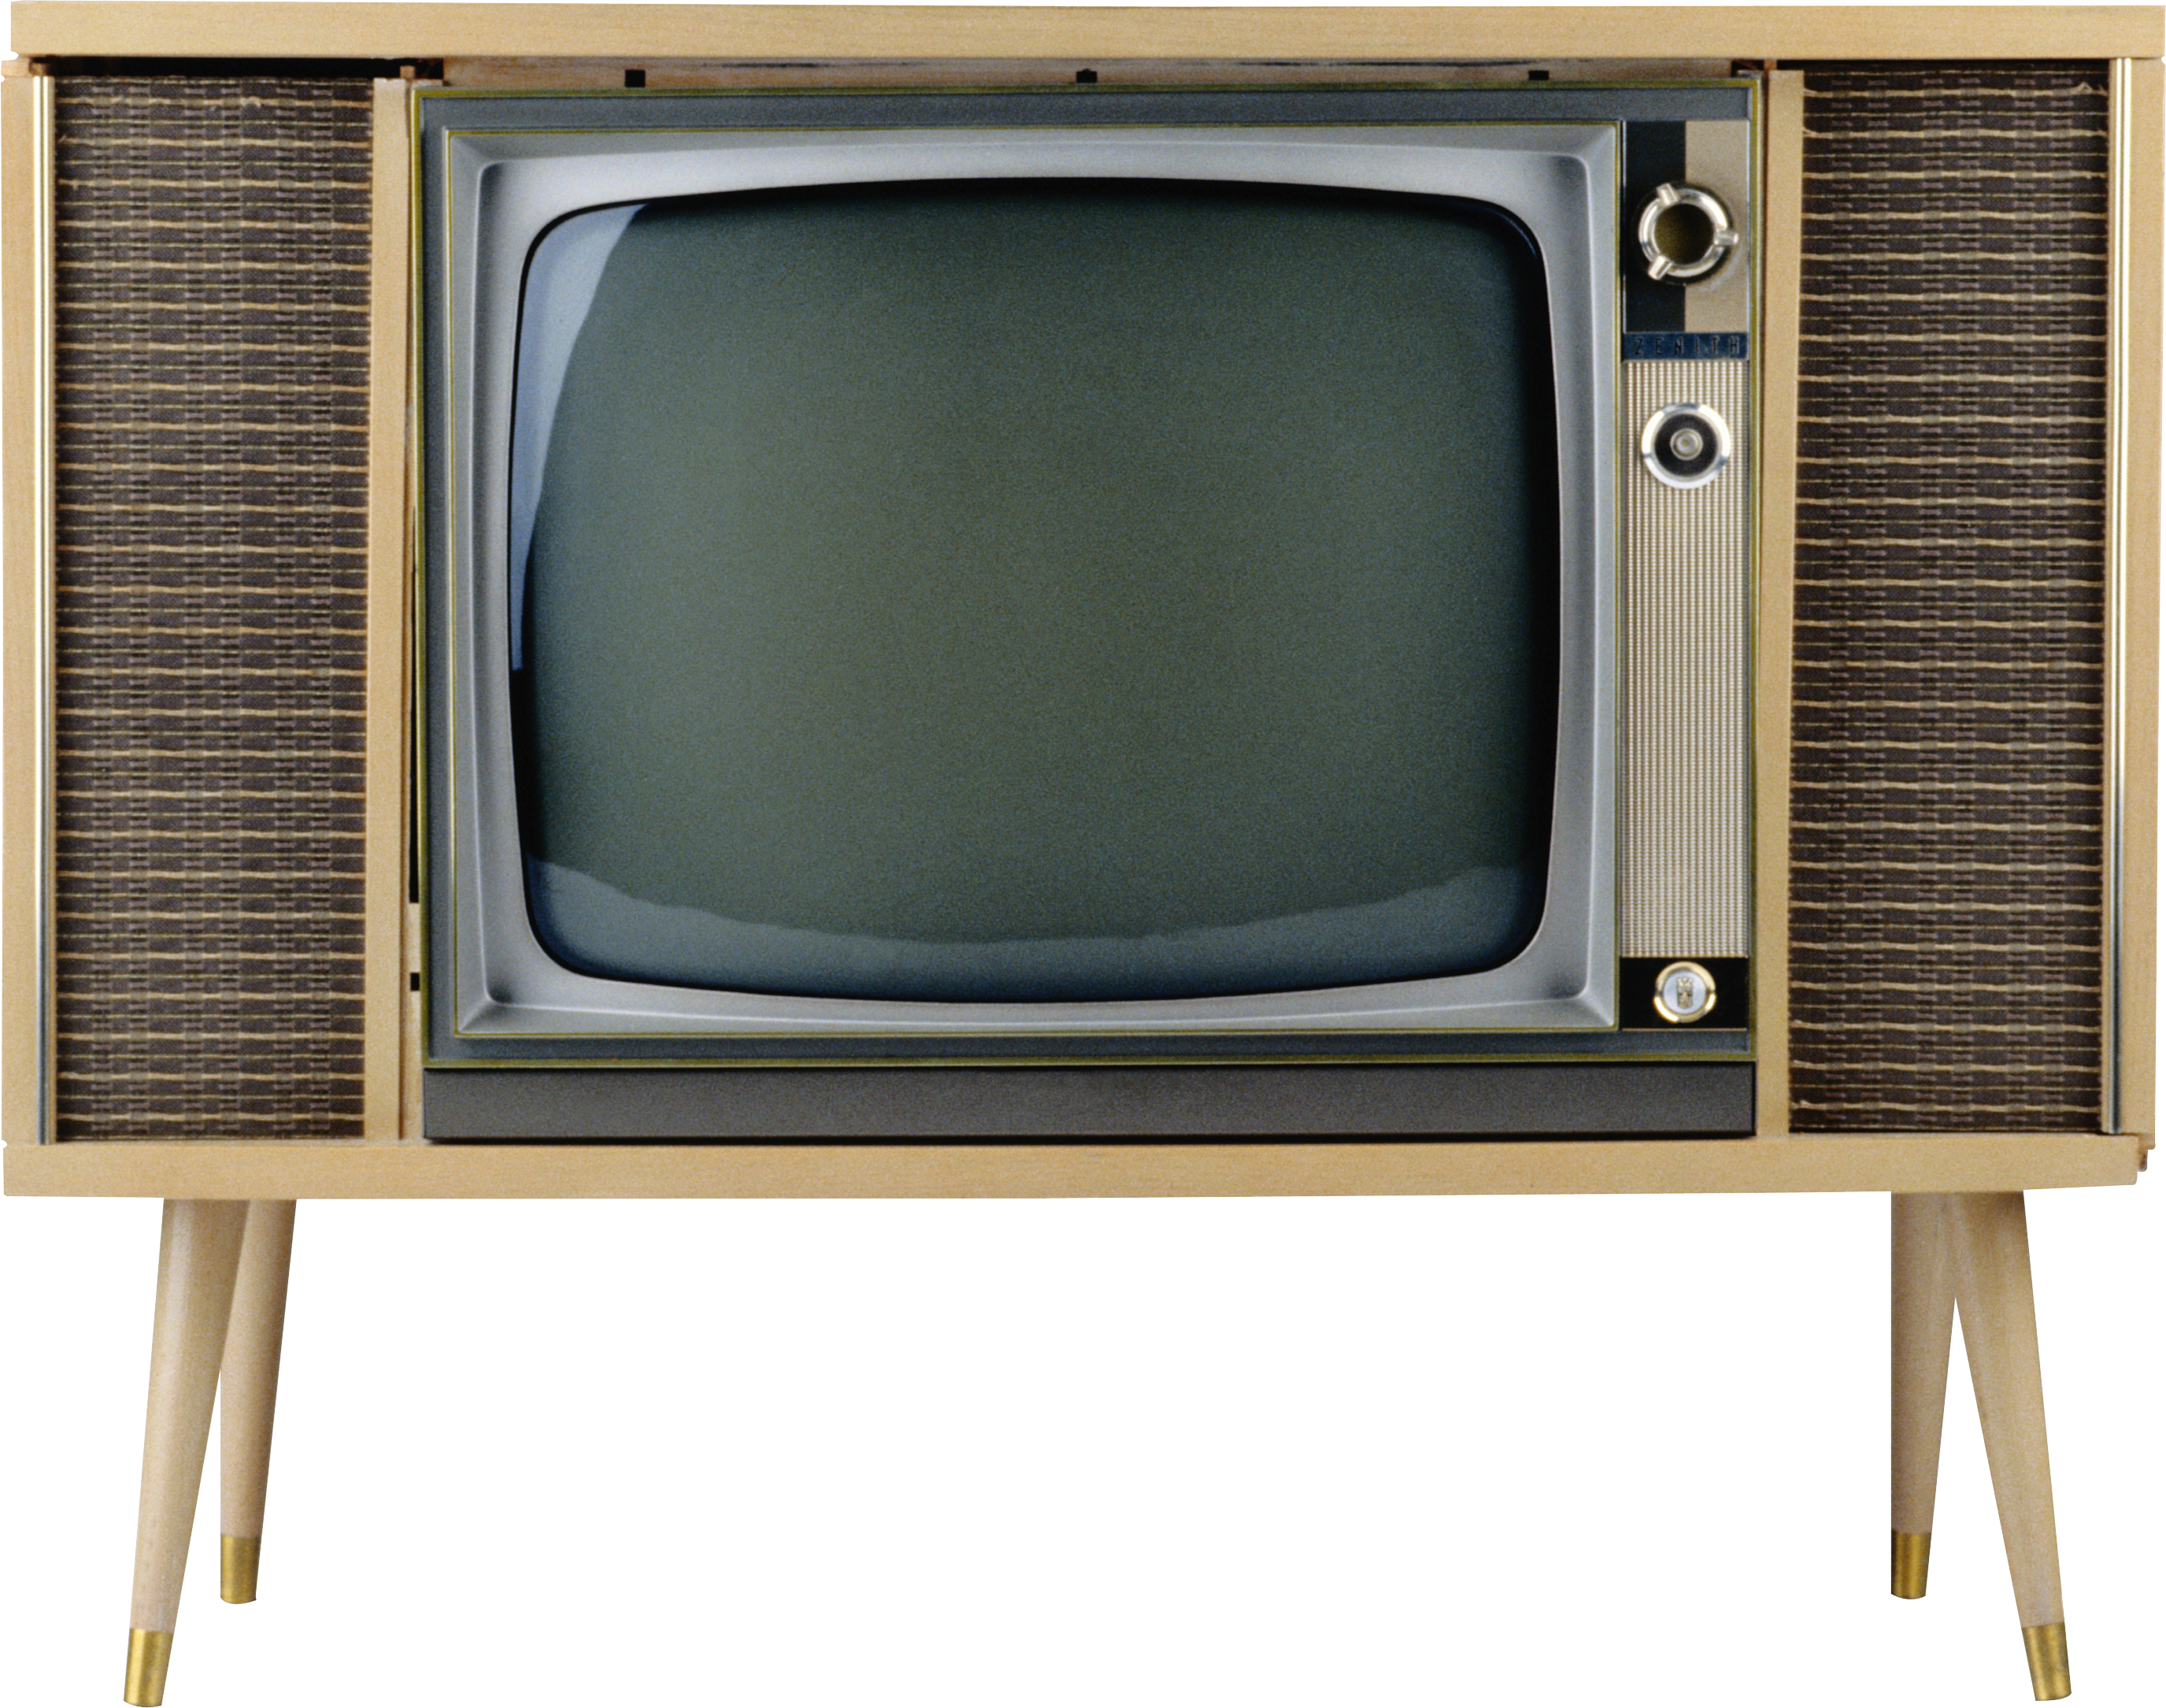 Old Television Png Image